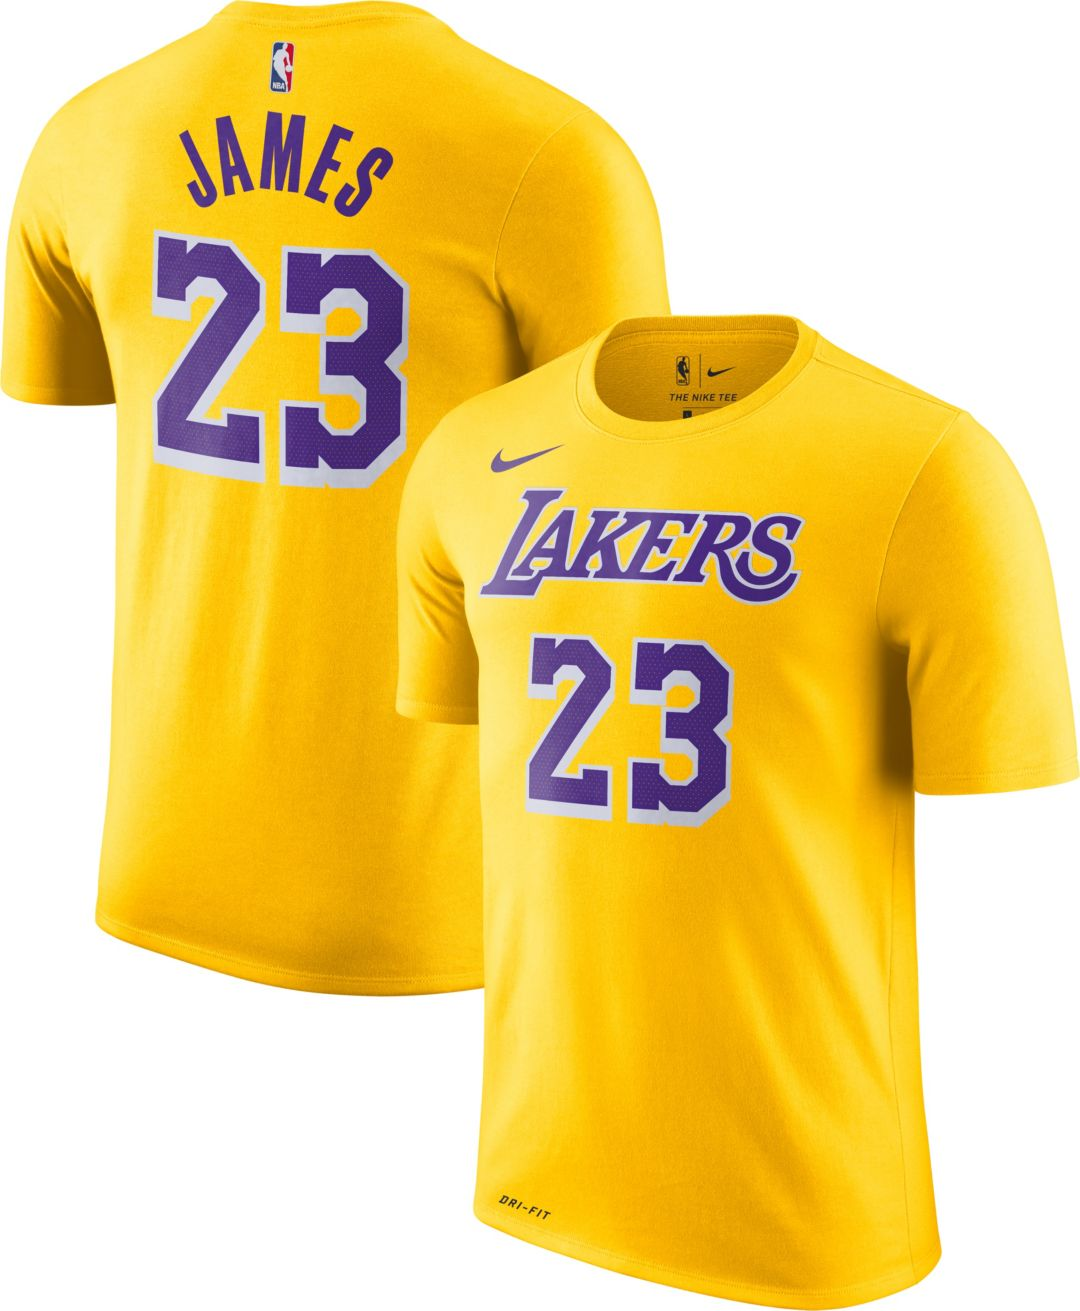 brand new 16243 3c3ea Nike Youth Los Angeles Lakers LeBron James Dri-FIT Gold T-Shirt